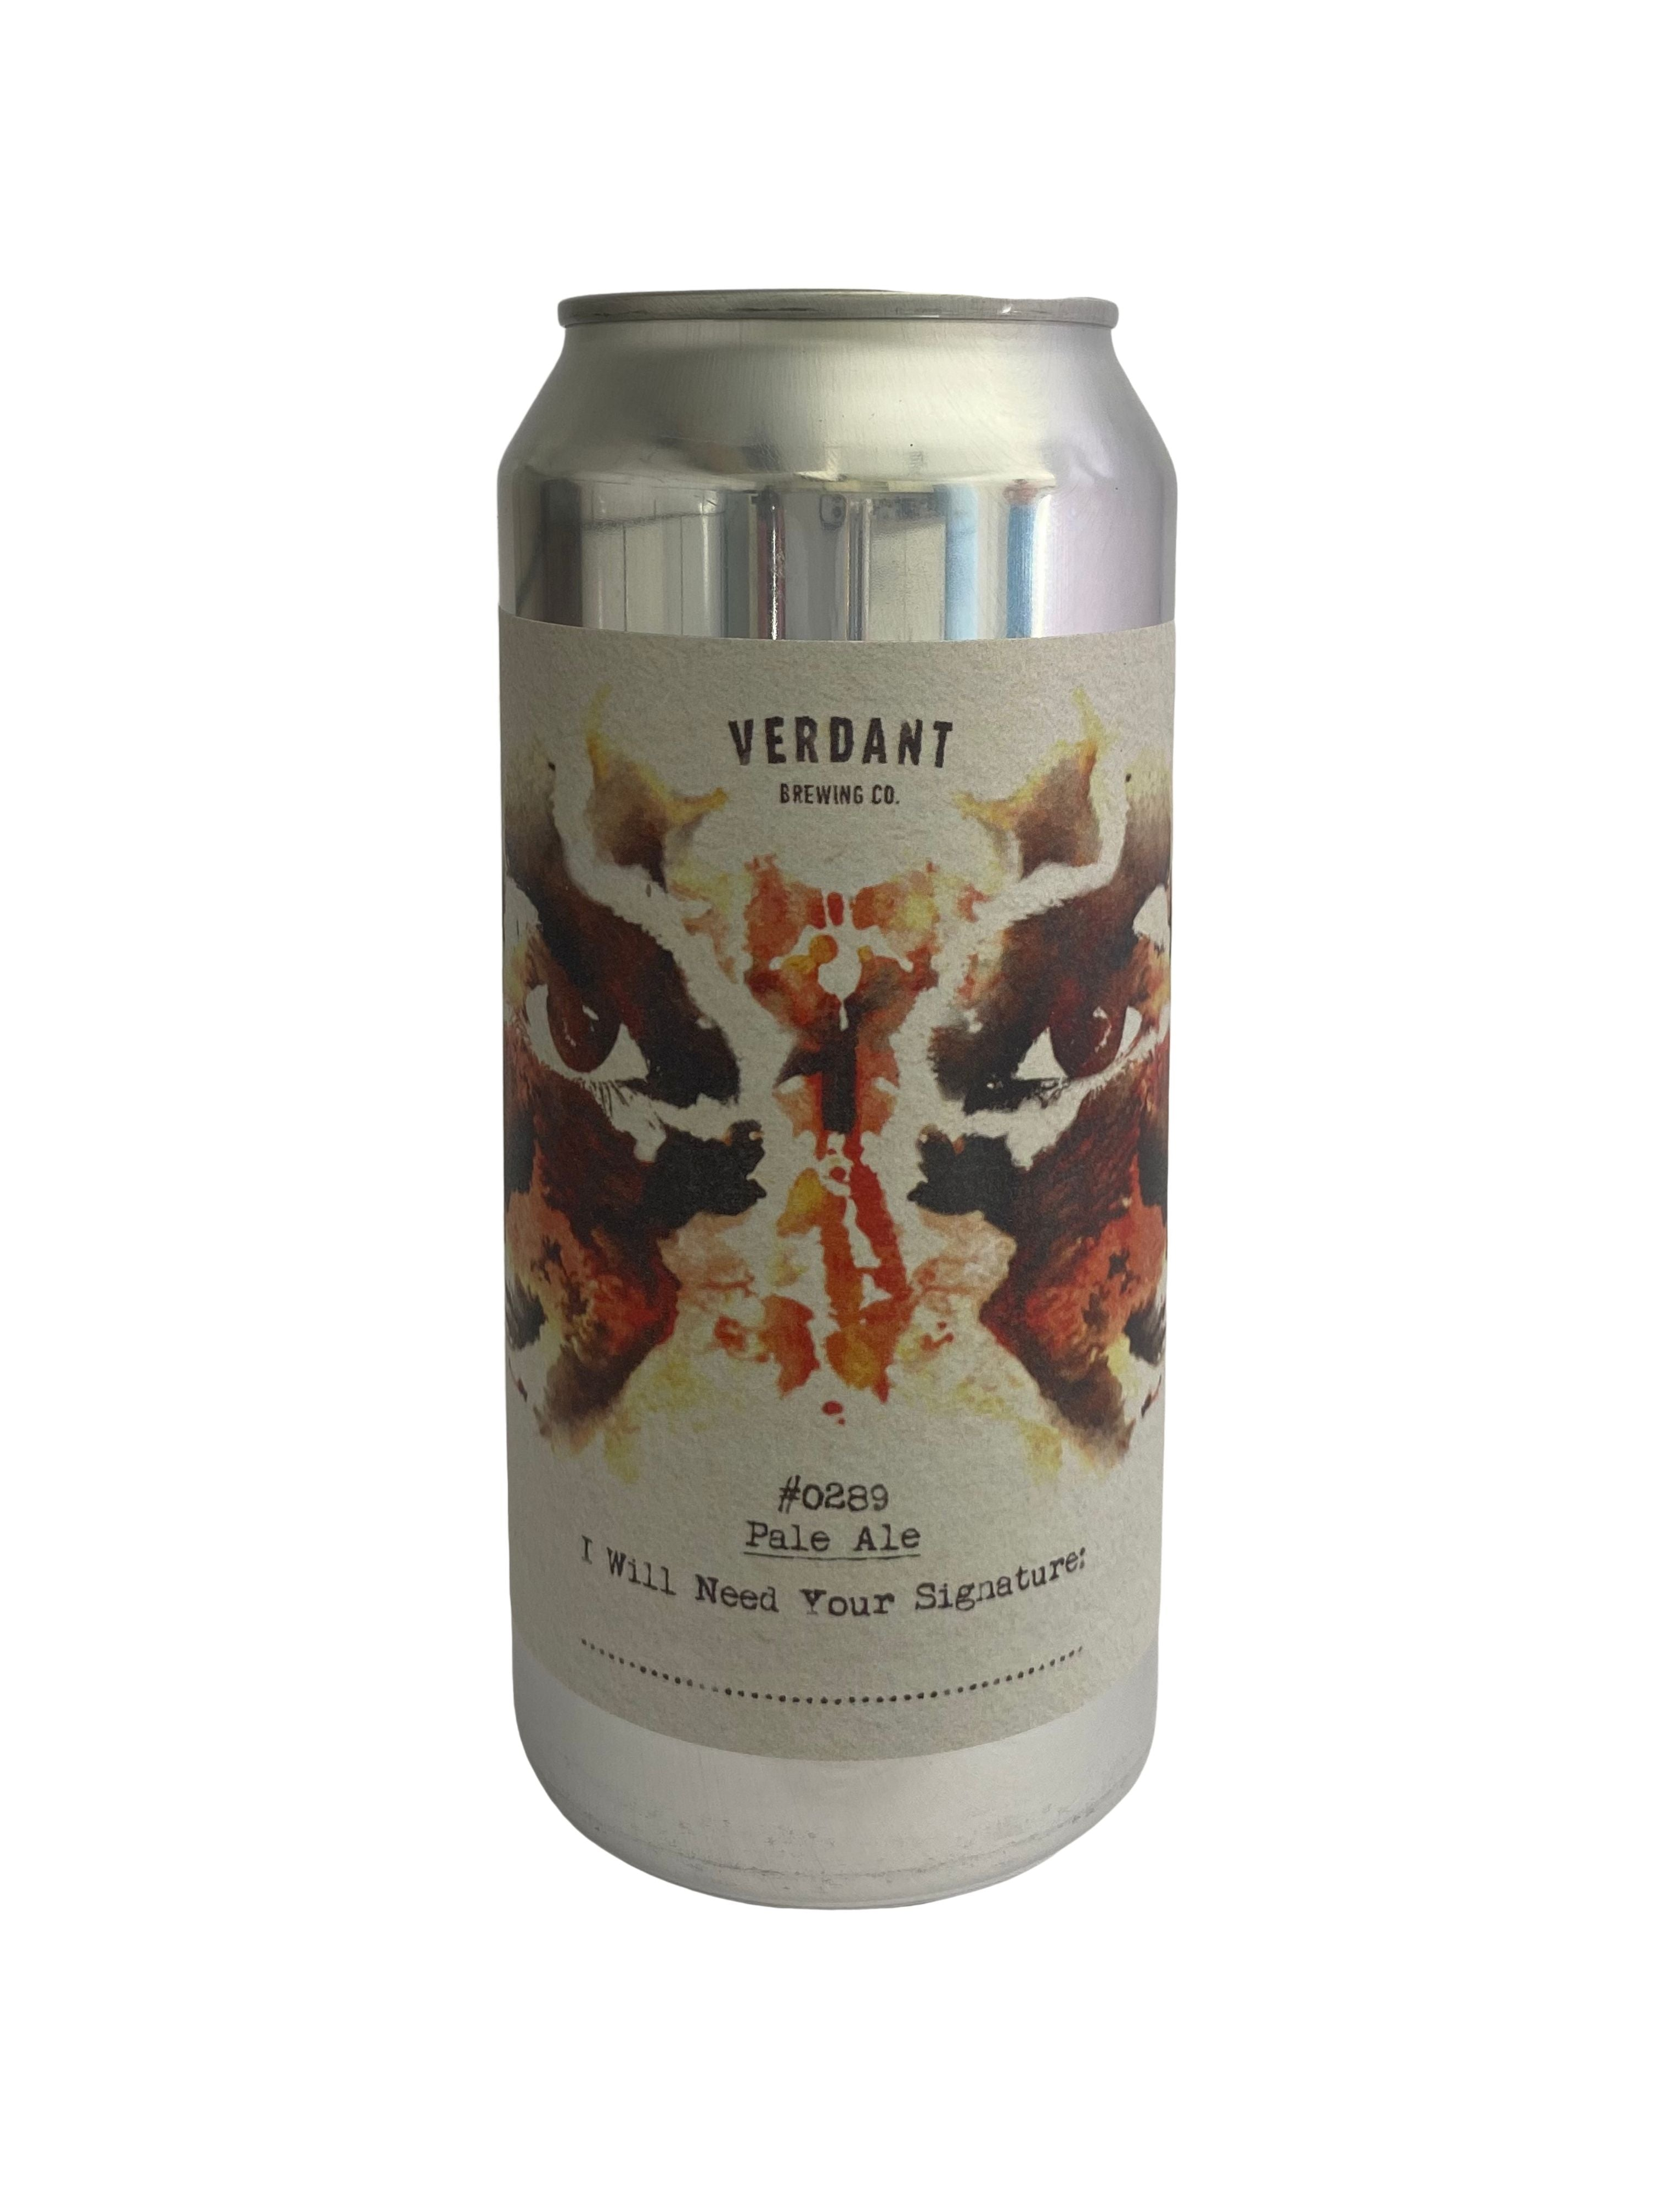 Verdant - I Will Need Your Signature - Pale Ale - 5.5% (4.04 UT)